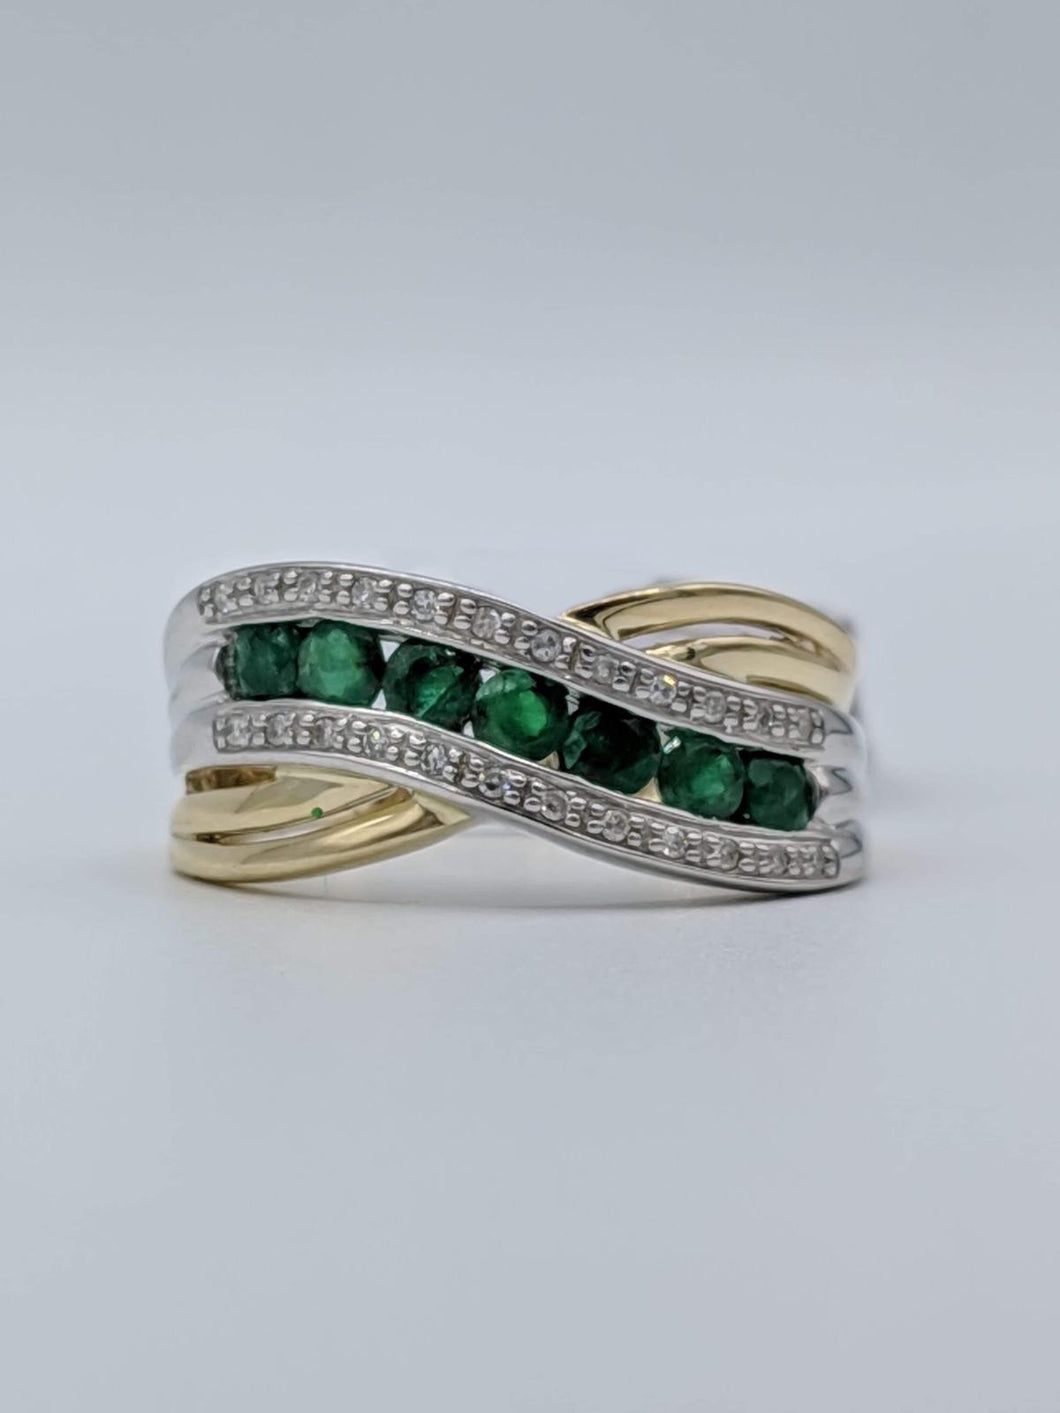 10kt Yellow Gold Curved Diamond Emerald Ring